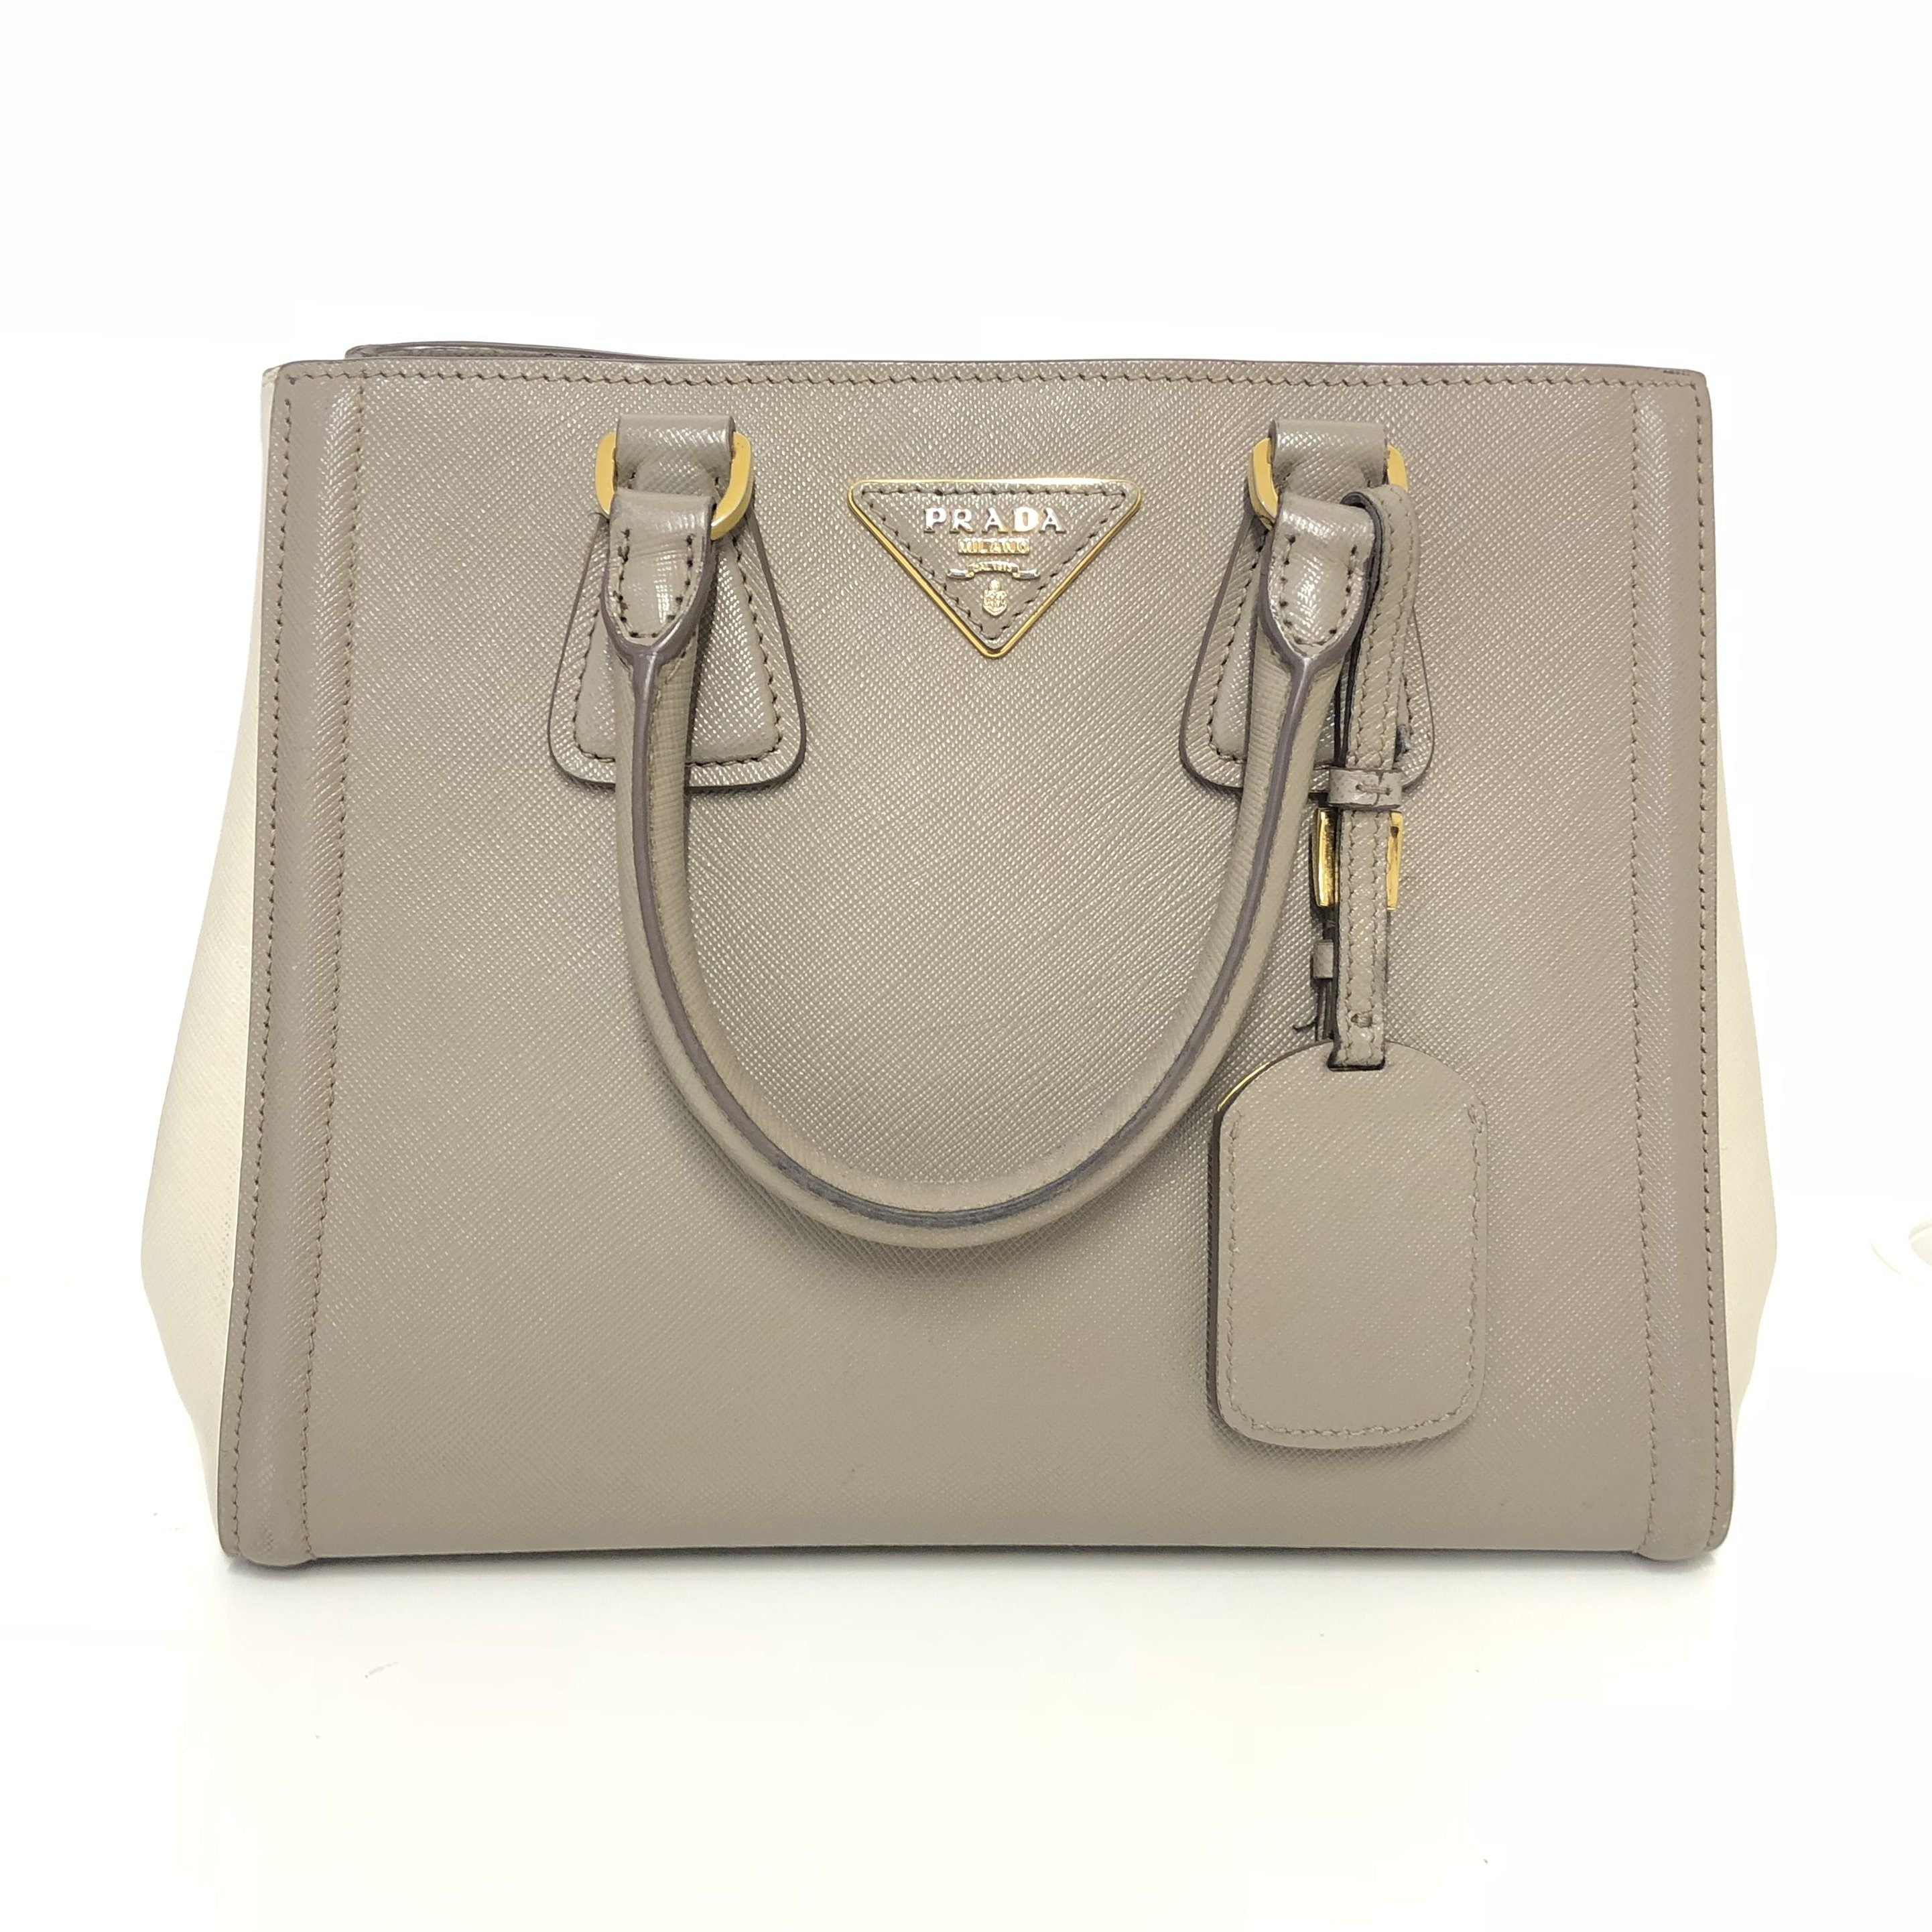 Prada Saffiano Lux Two-Tone Bag